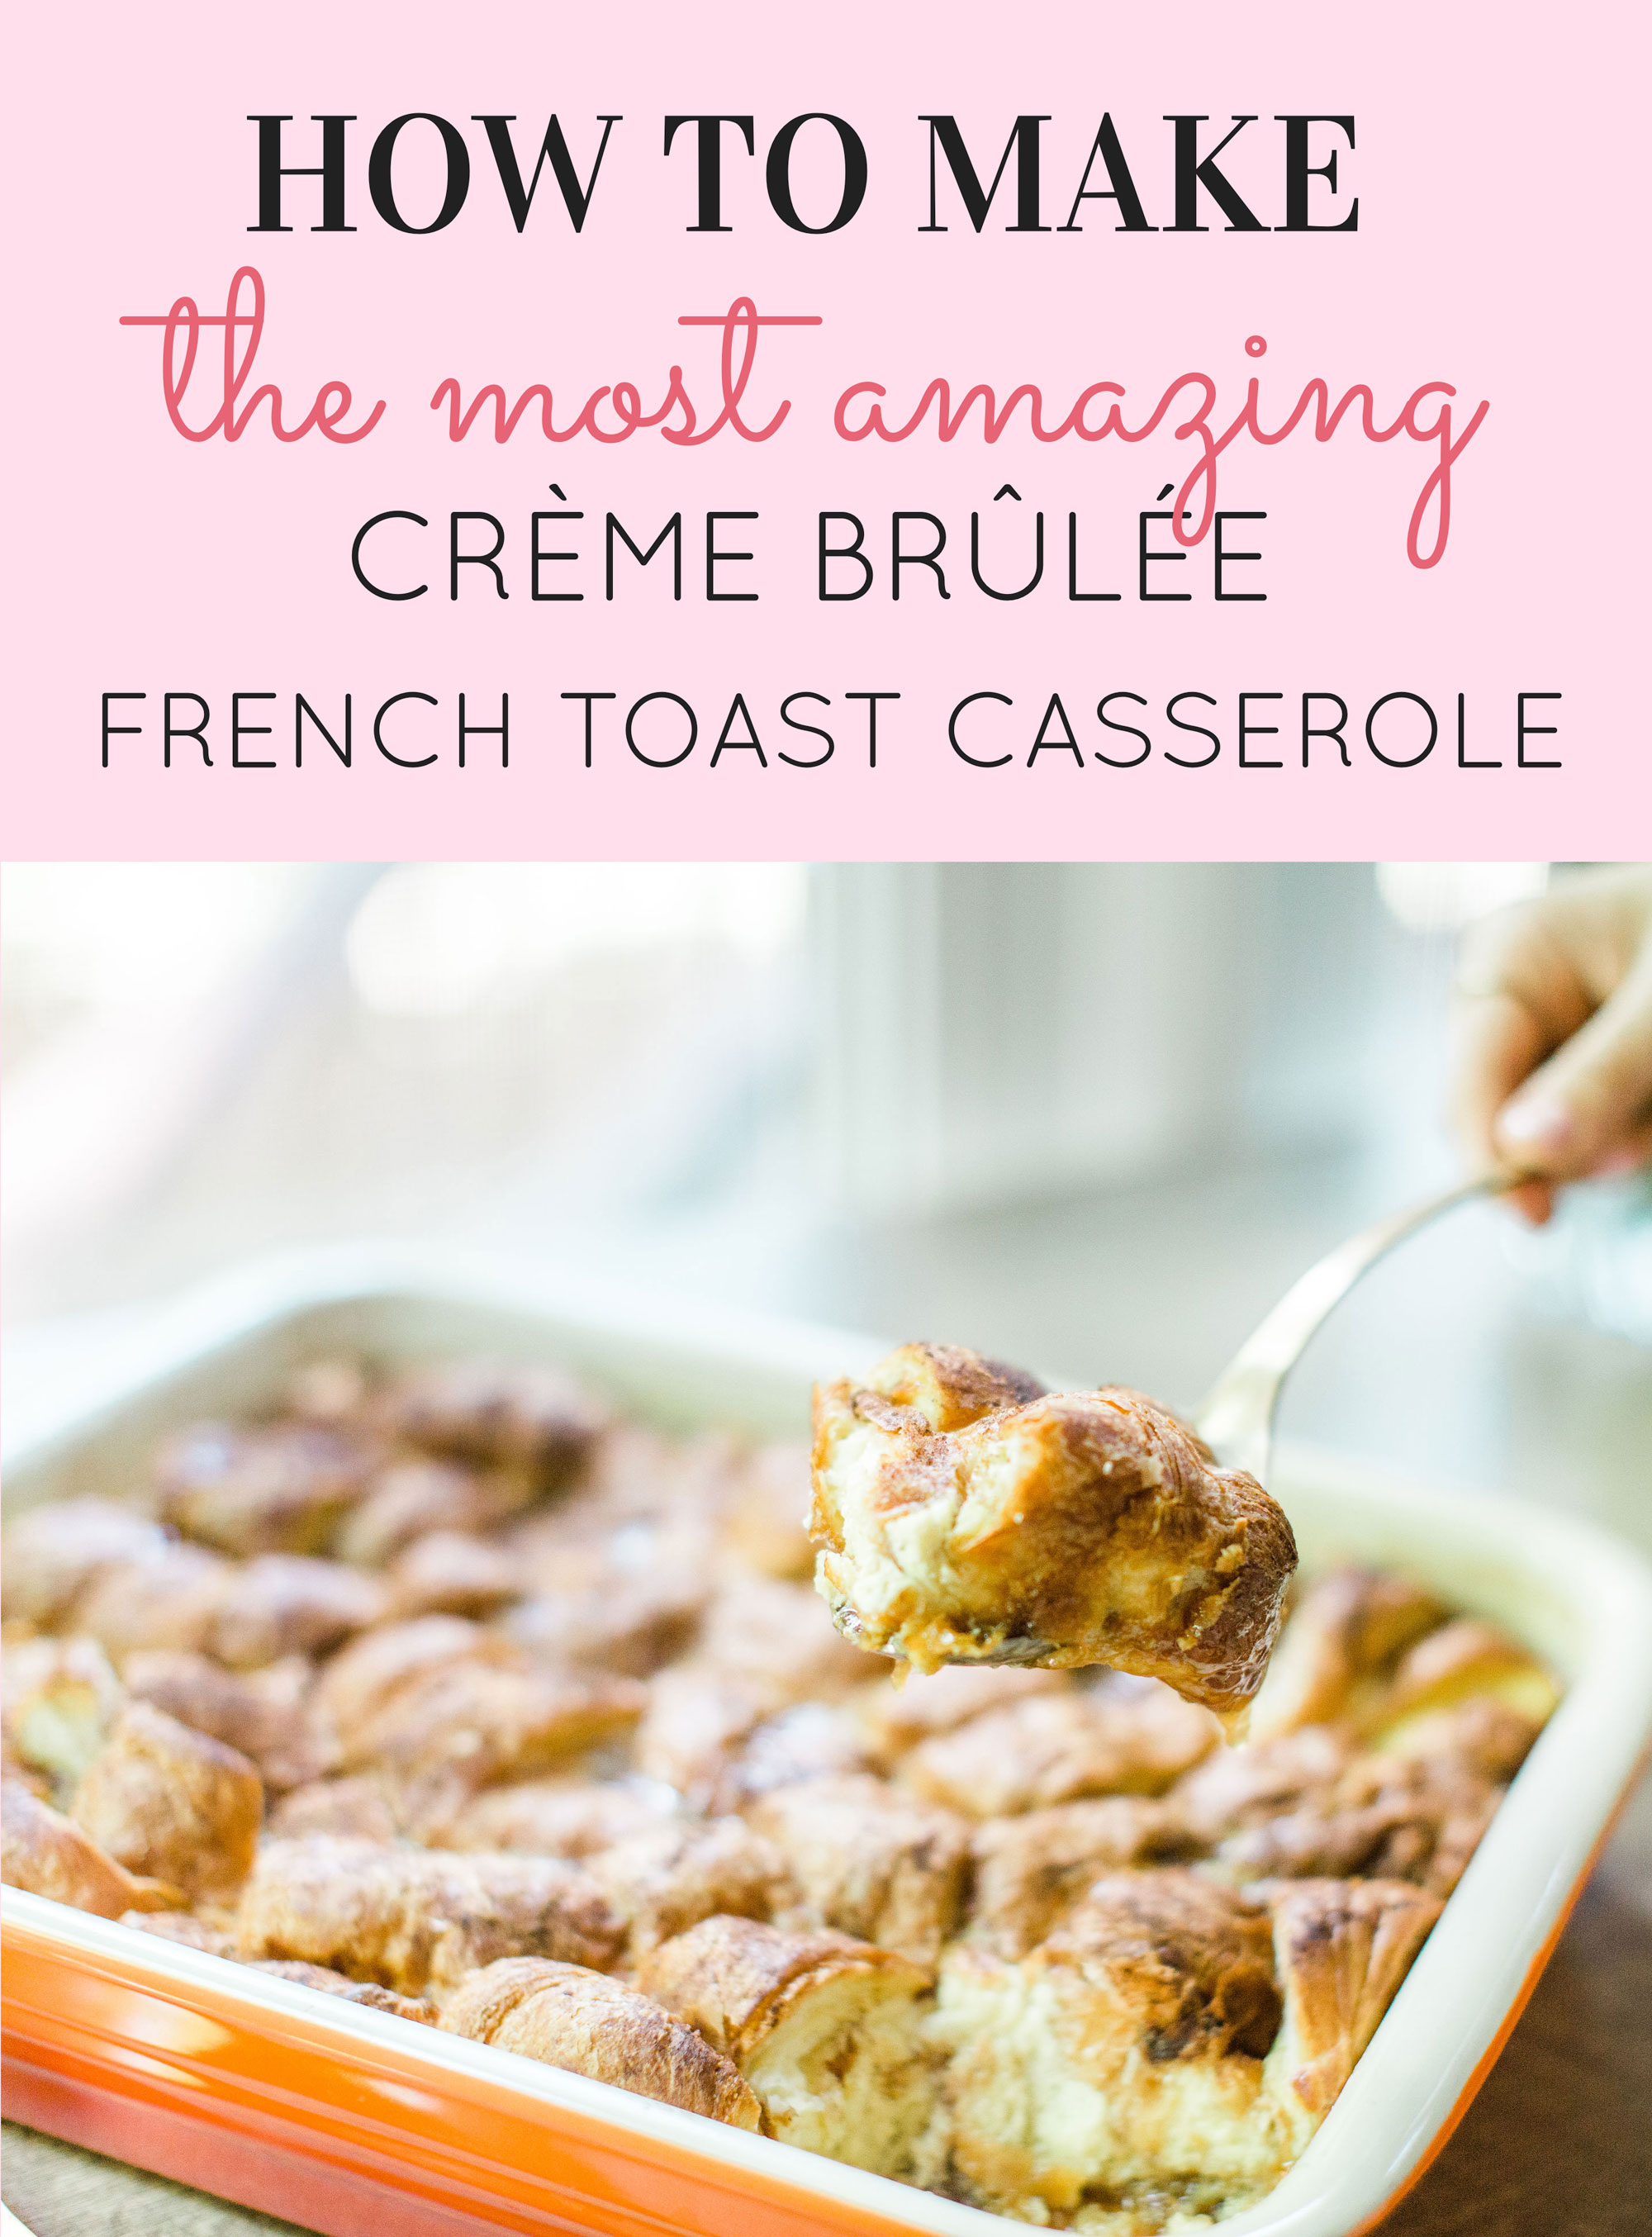 Look no further than this insanely amazing overnight crème brûlée french toast casserole. This decadent dessert has been a staple at our family brunches for years, and with this one special tweak, we've managed to make it even better. Read on for the details! Click through for the recipe. #cremebruleefrenchtoast #cremebruleefrenchtoastcasserole | glitterinc.com | @glitterinc